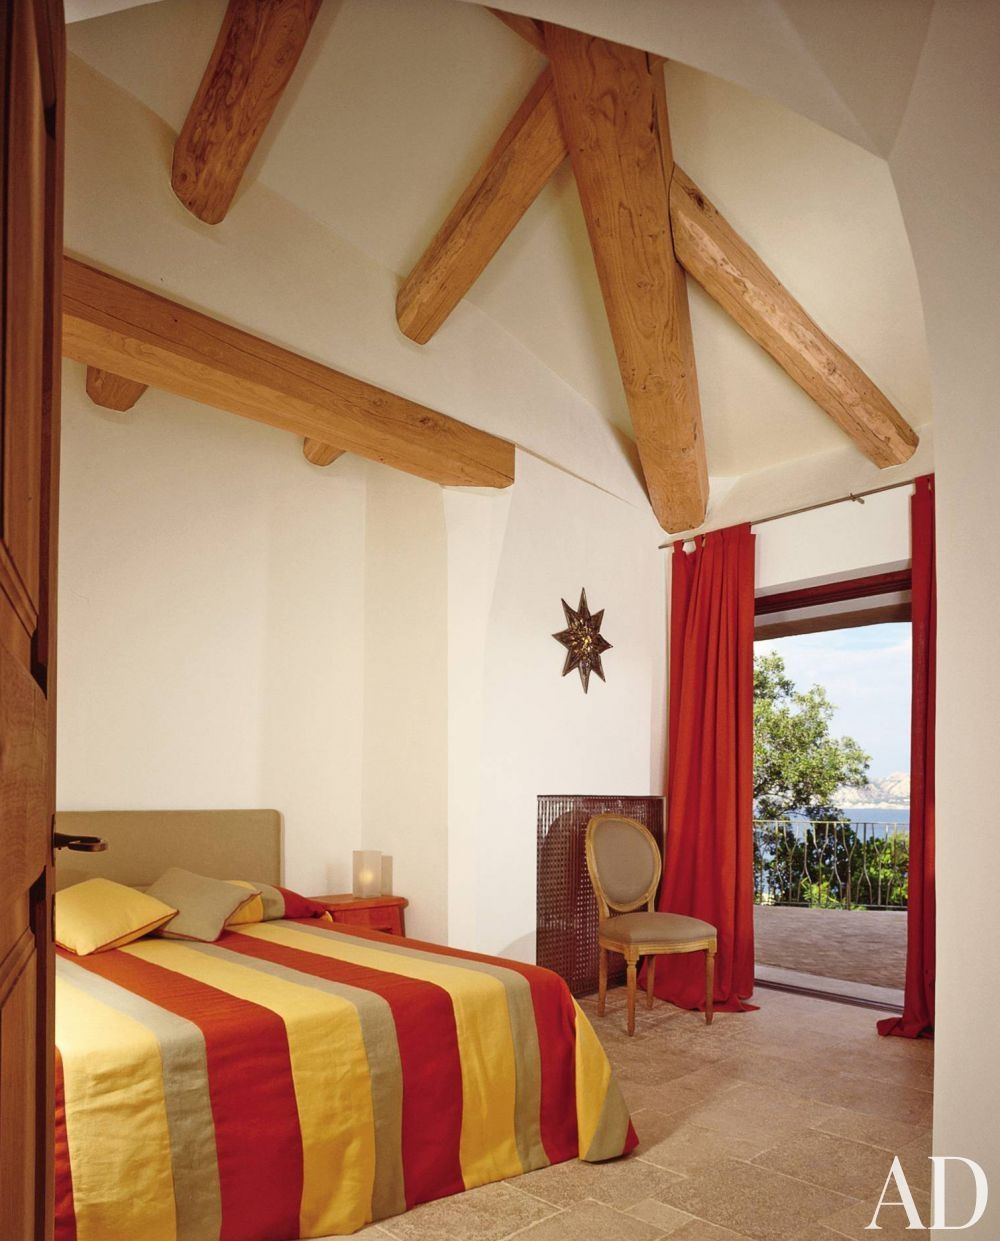 Modern Bedroom and Savin Couëlle in Sardinia, Italy